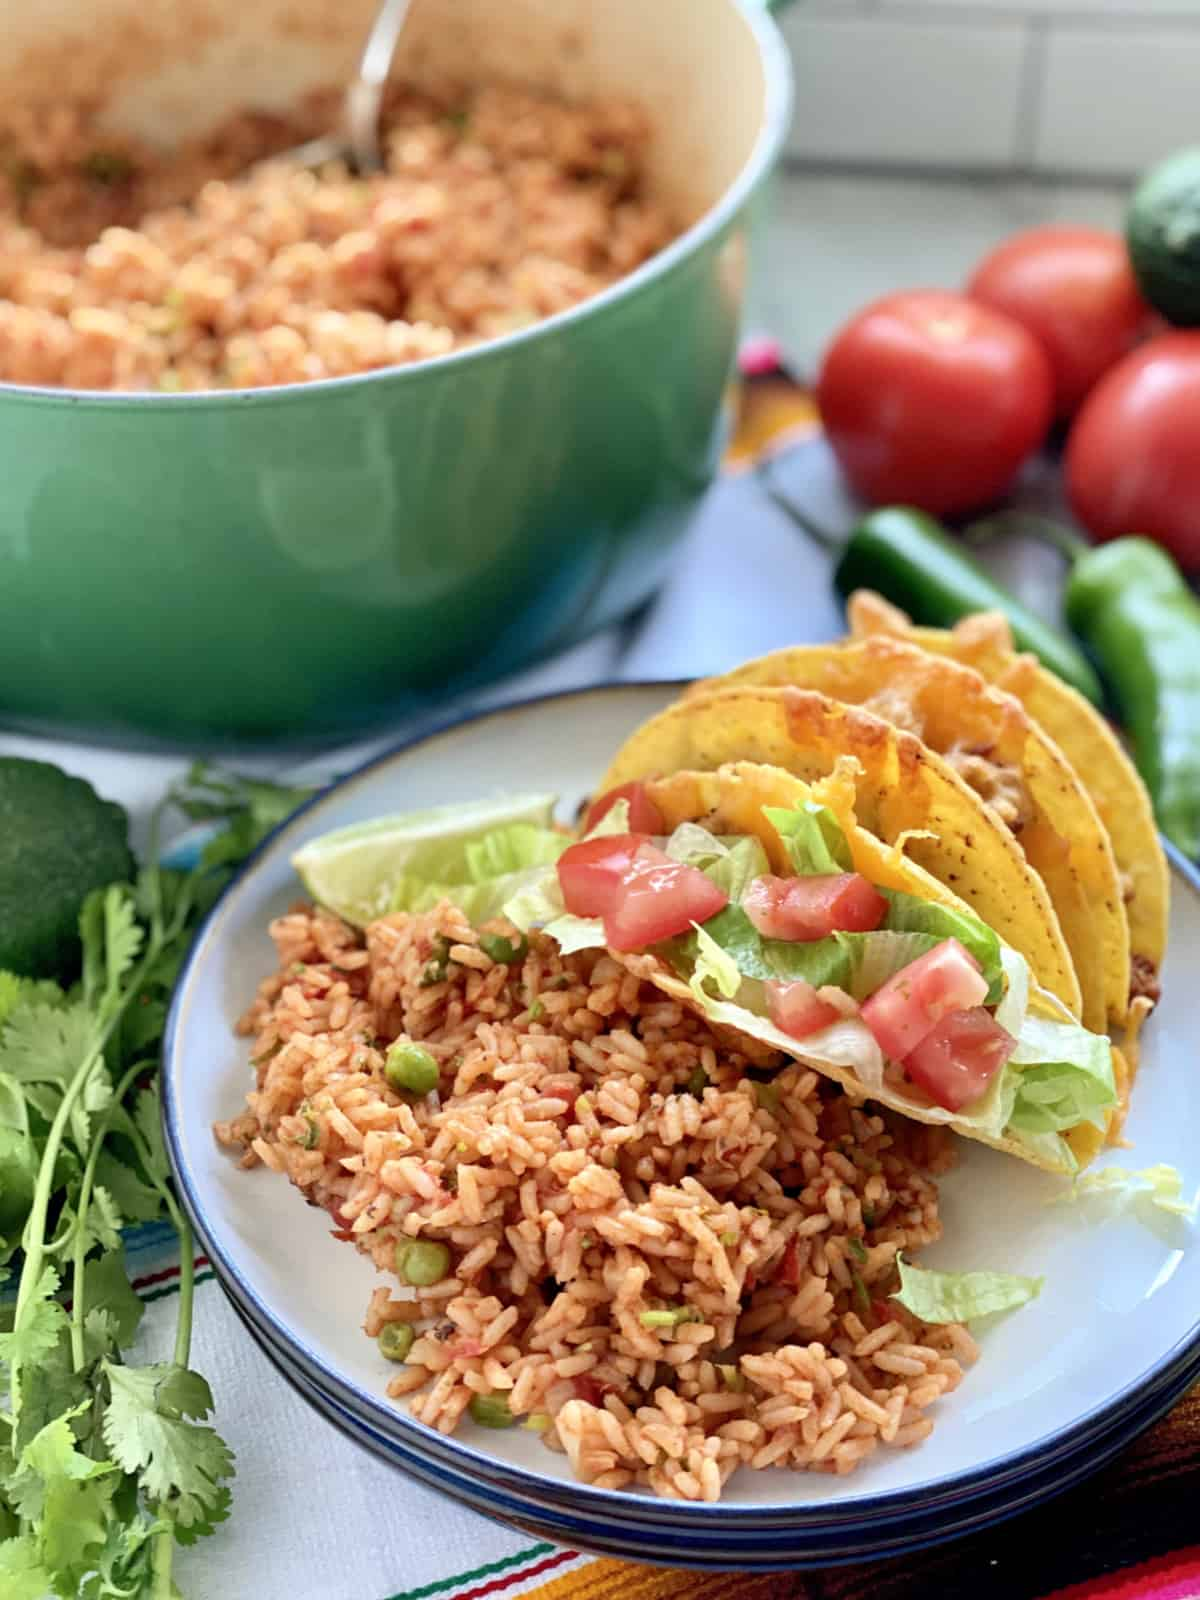 White plate filled with Mexican Rice and tacos with greep pot filled with rice in background.